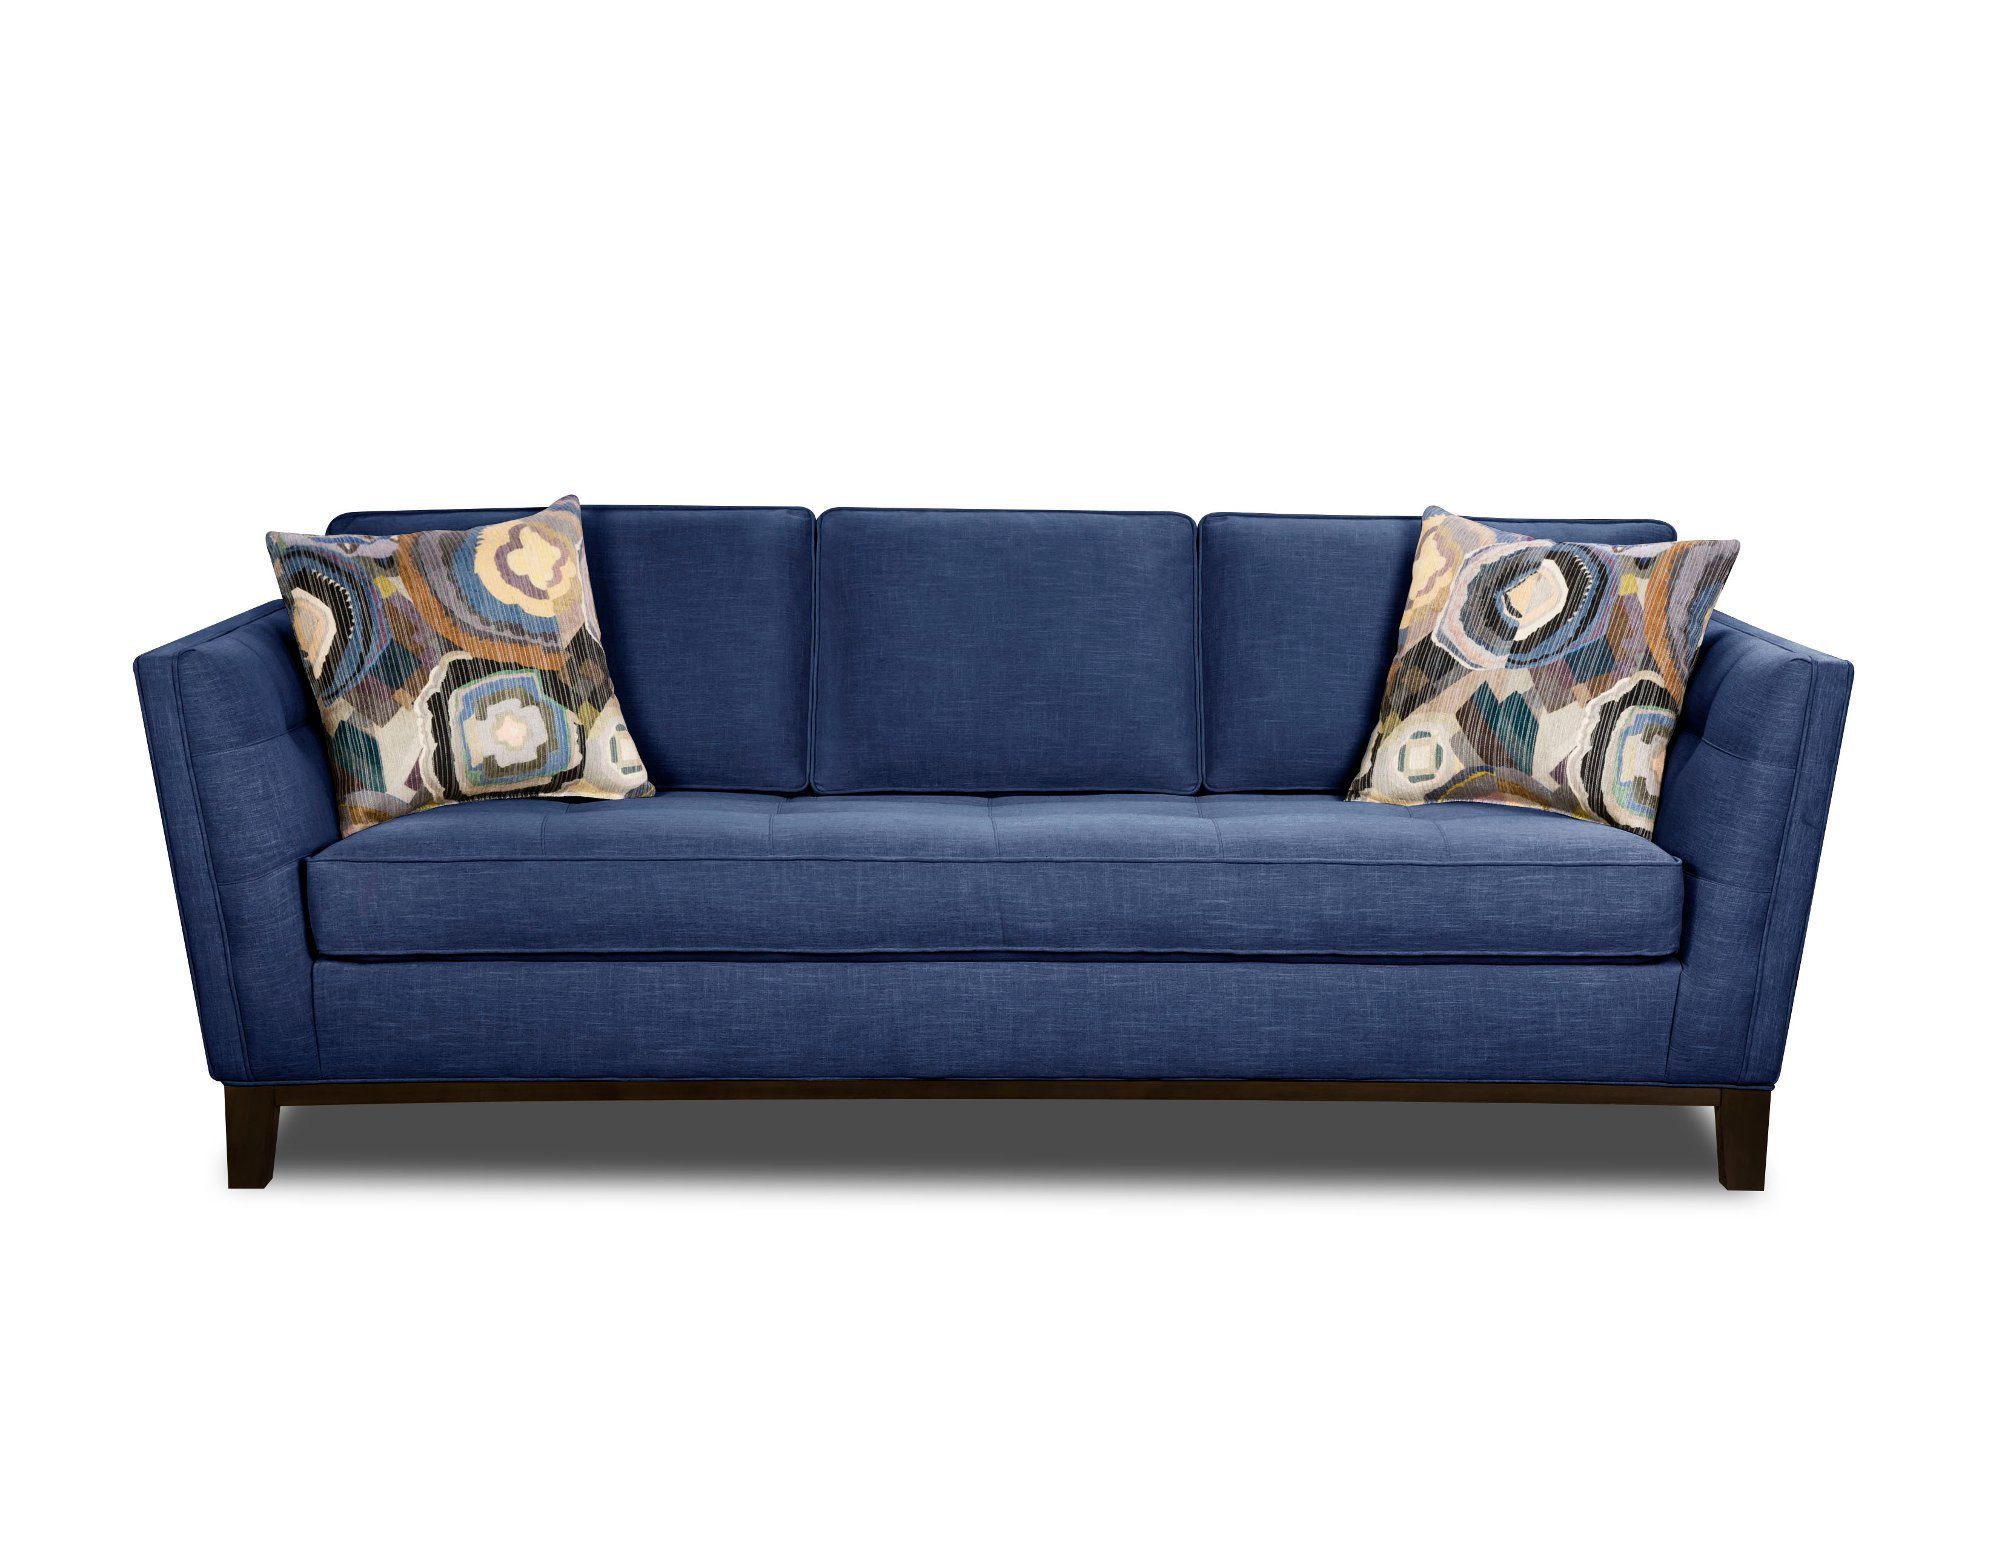 https://static.rcwilley.com/products/110952804/Mid-Century-Modern-Blue-Sofa---Patchquilt-rcwilley-image1.jpg